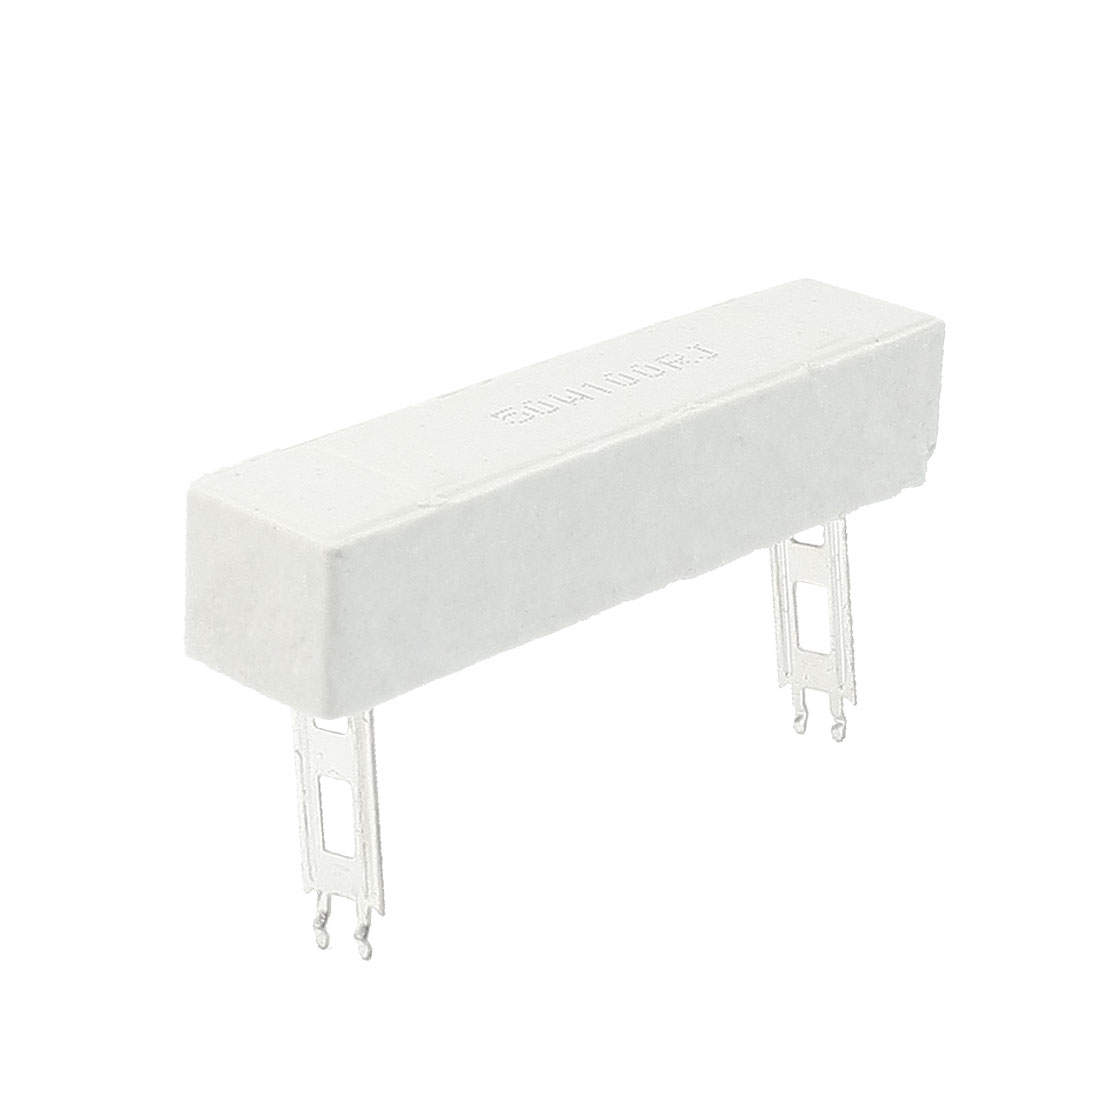 50W Watt 100R 100 ohm 5% Ceramic Cement Power Resistor